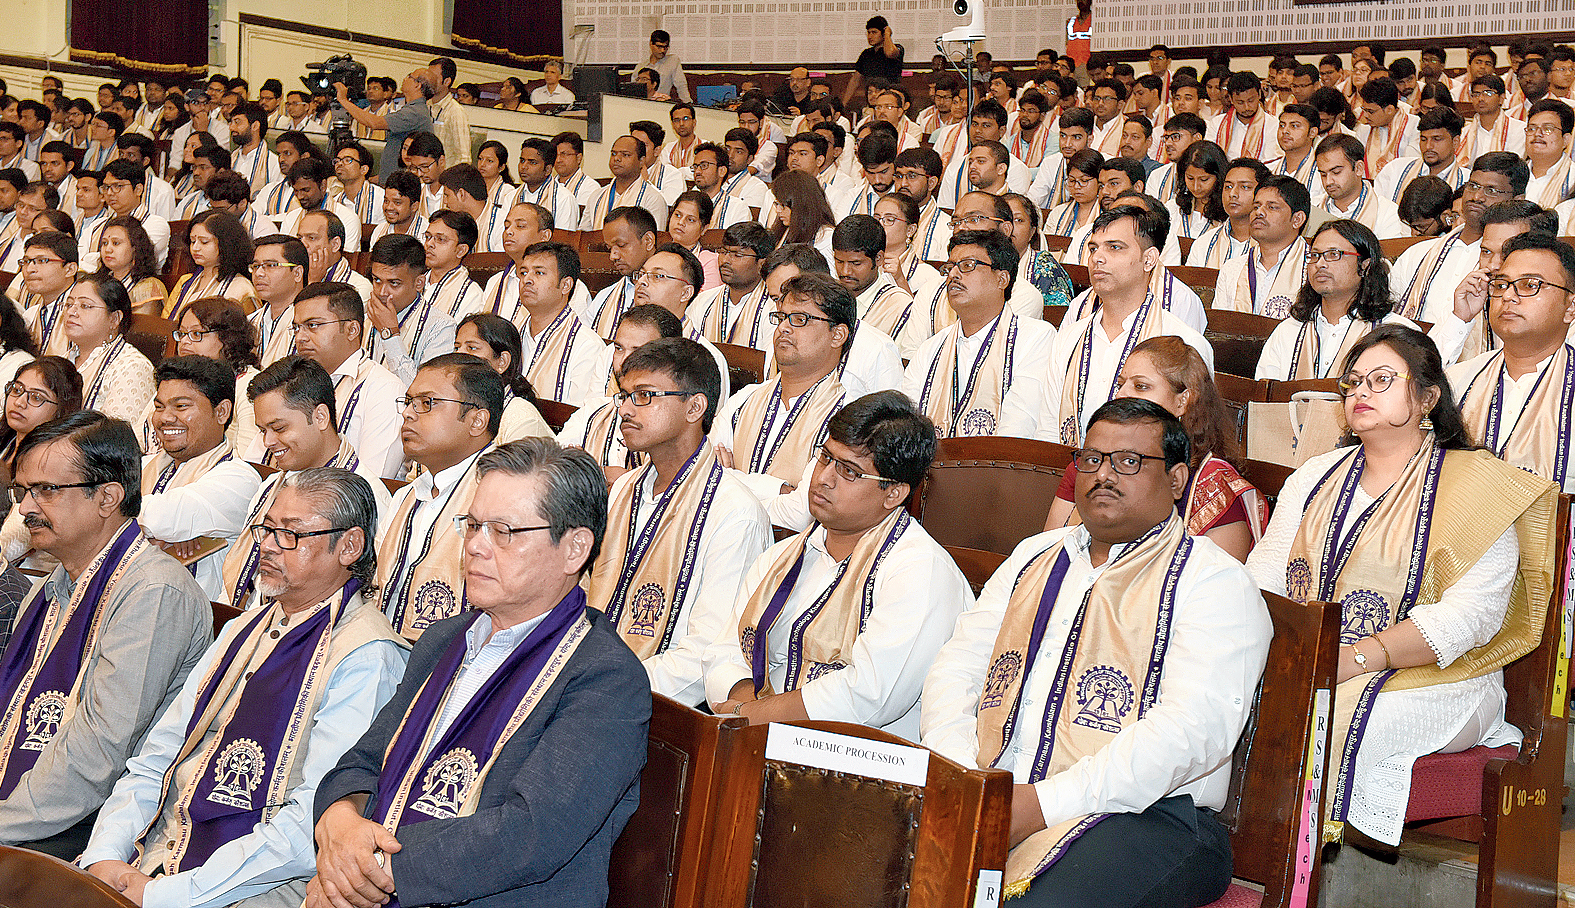 Participants at the convocation